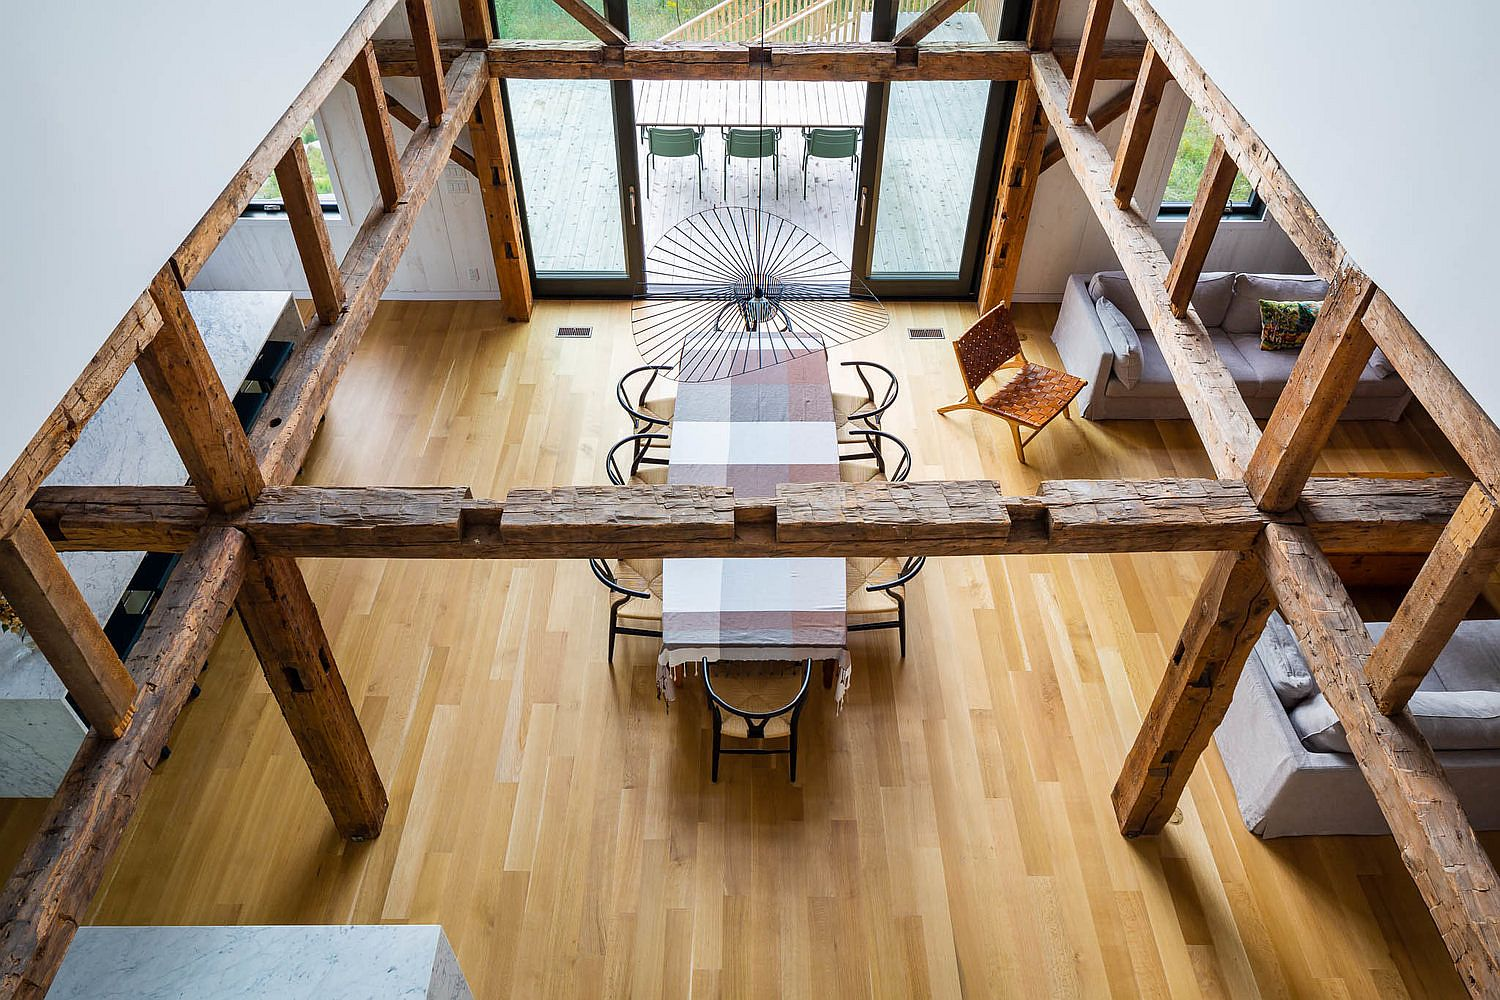 View of the dining area and the living space from above